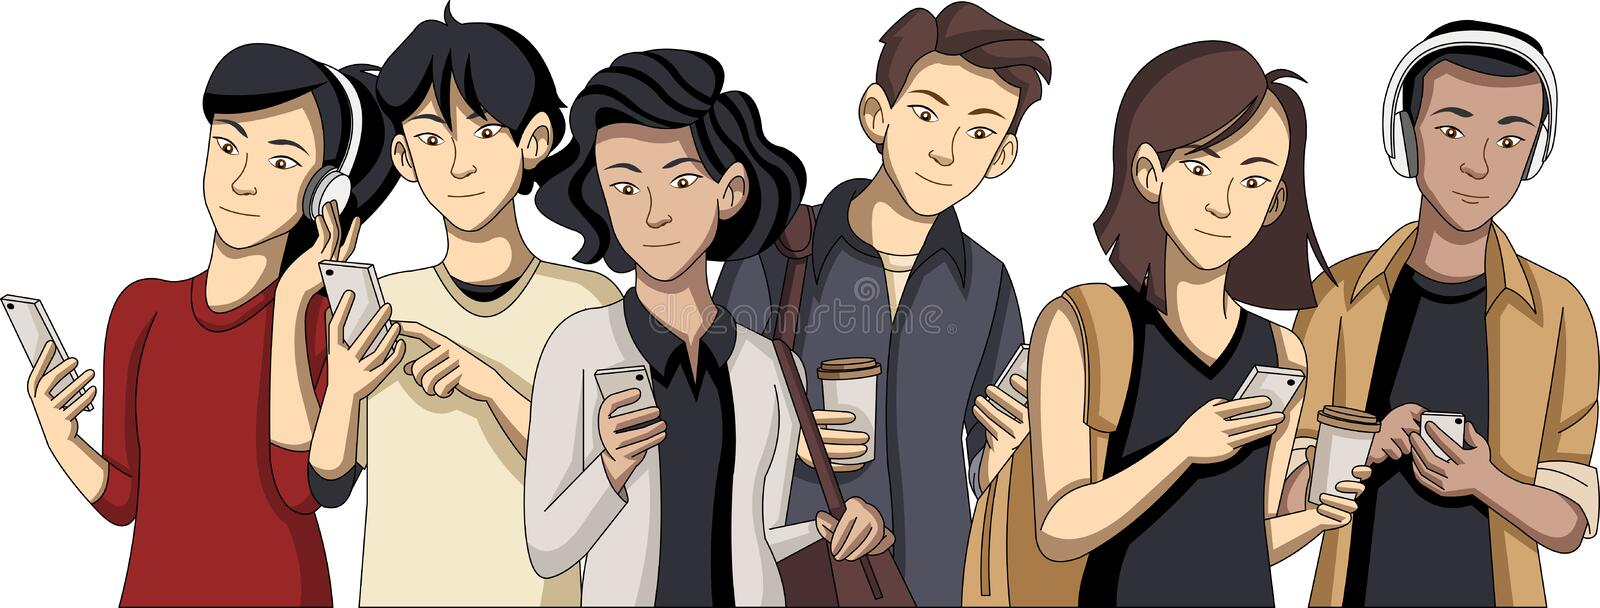 Cartoon young people with smart phones royalty free illustration